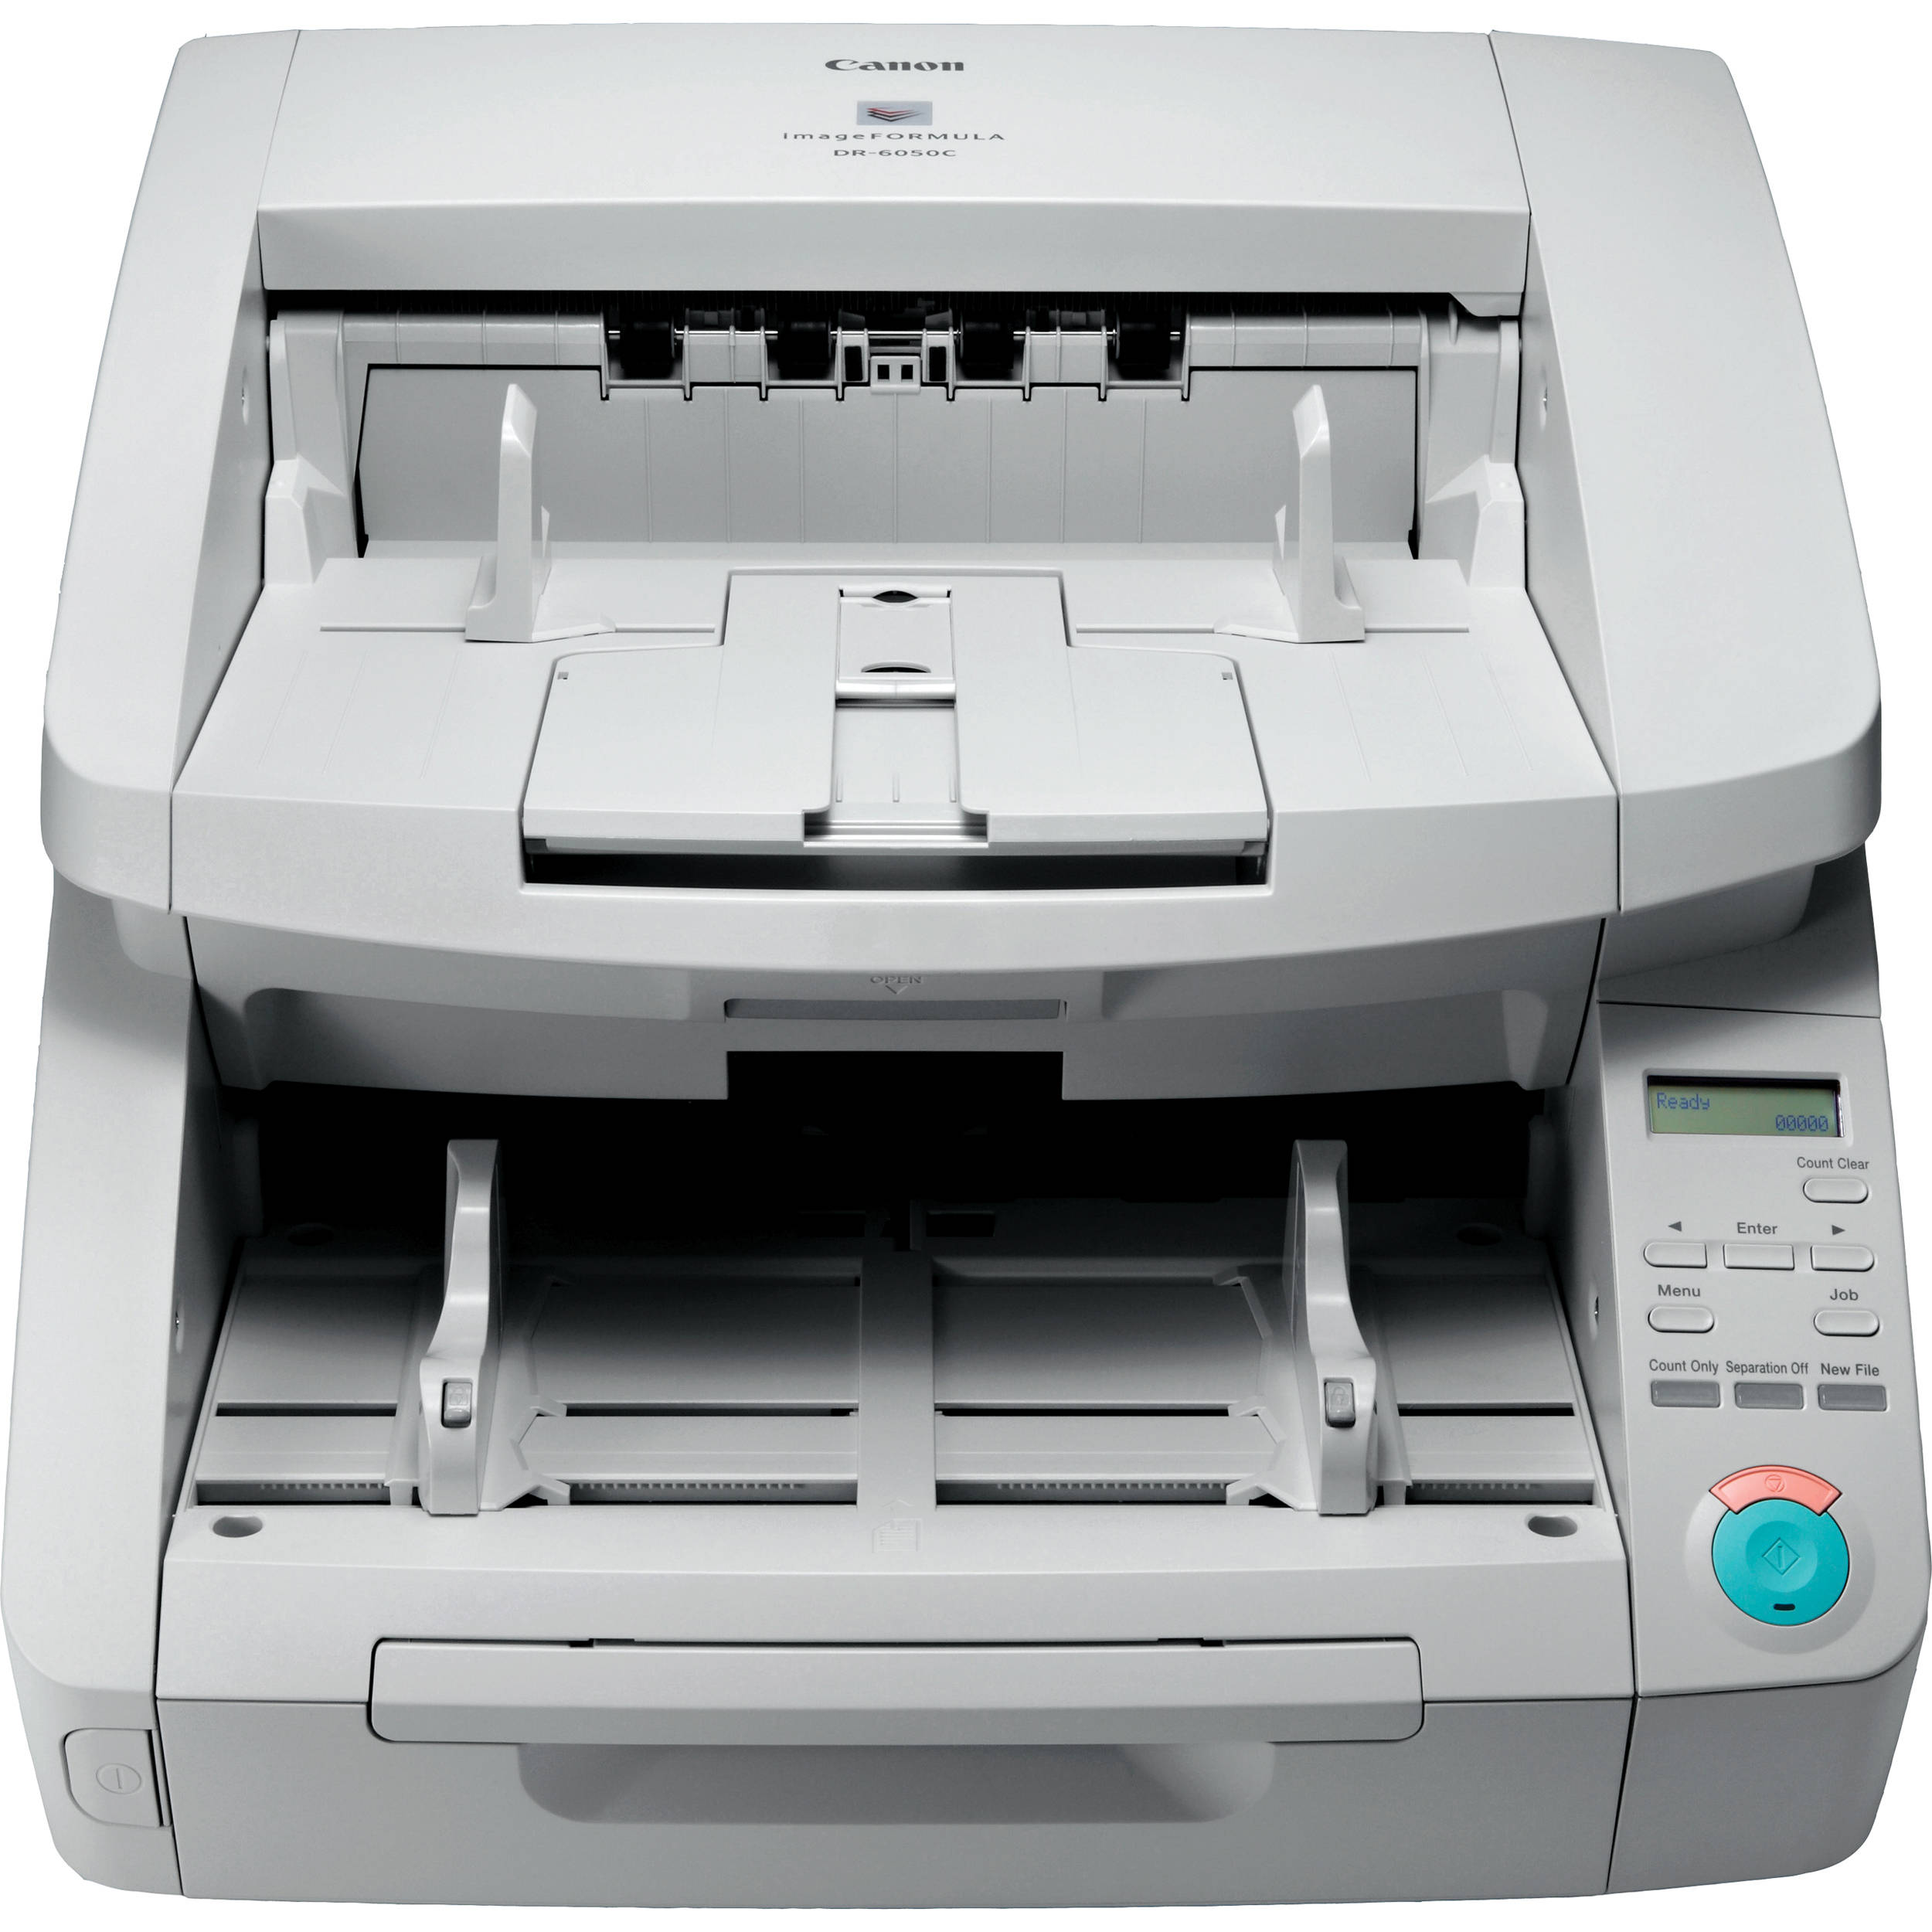 Canon imageFORMULA DR-2580C Scanner ISIS/Twain Driver for Mac Download